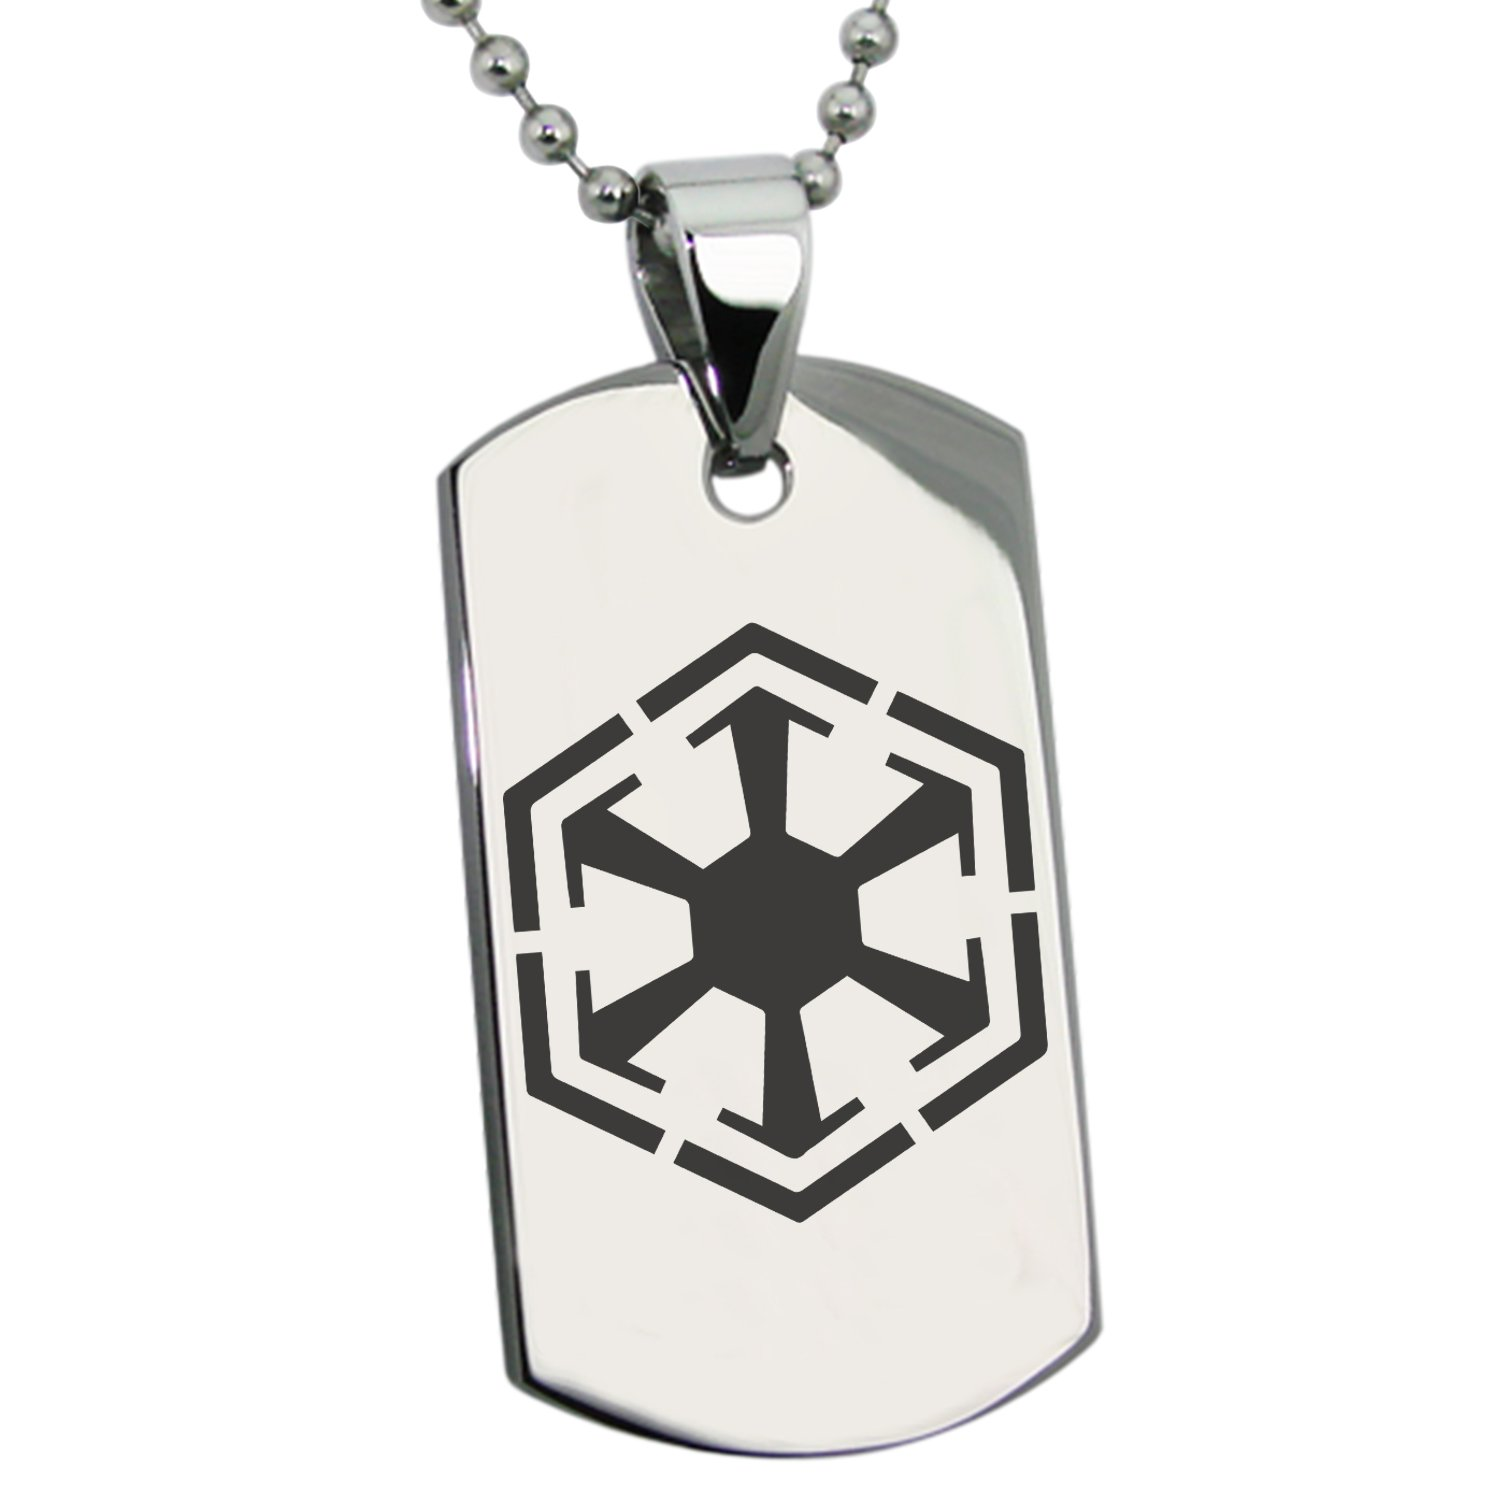 Amazon black stainless steel star wars old republic sith amazon black stainless steel star wars old republic sith empire symbol engraved dog tag pendant necklace jewelry biocorpaavc Image collections